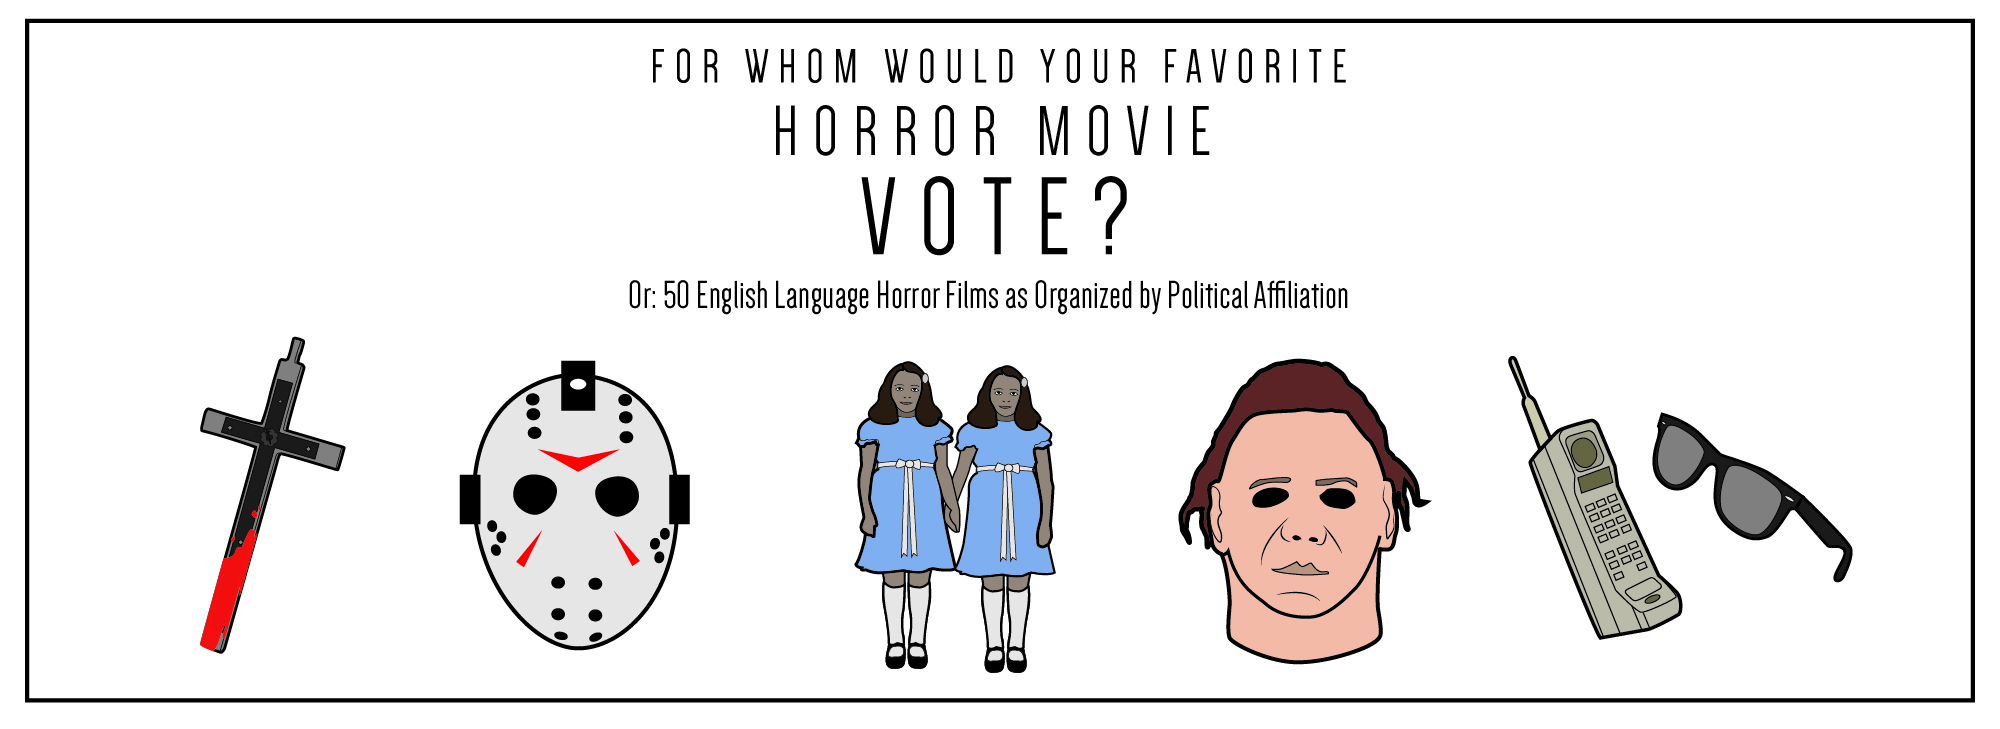 For whom would your favorite horror film vote?